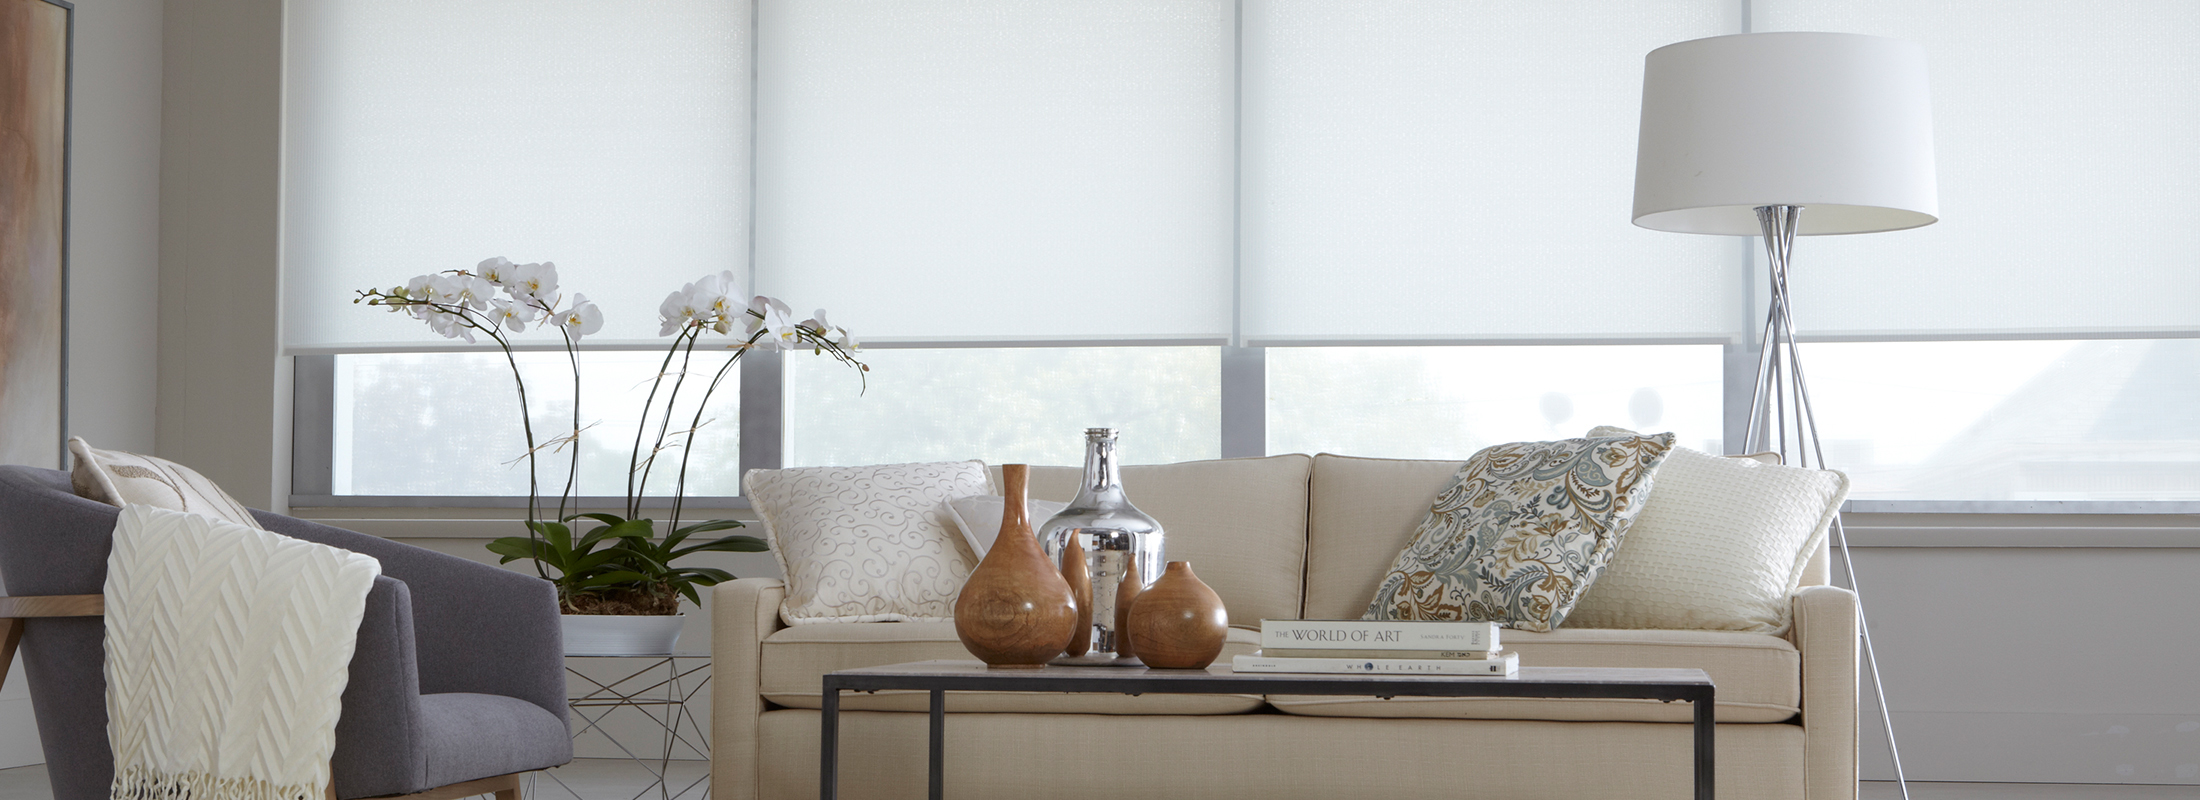 Get Horizons Shades of Elegance by Horizons at The Blinds Man